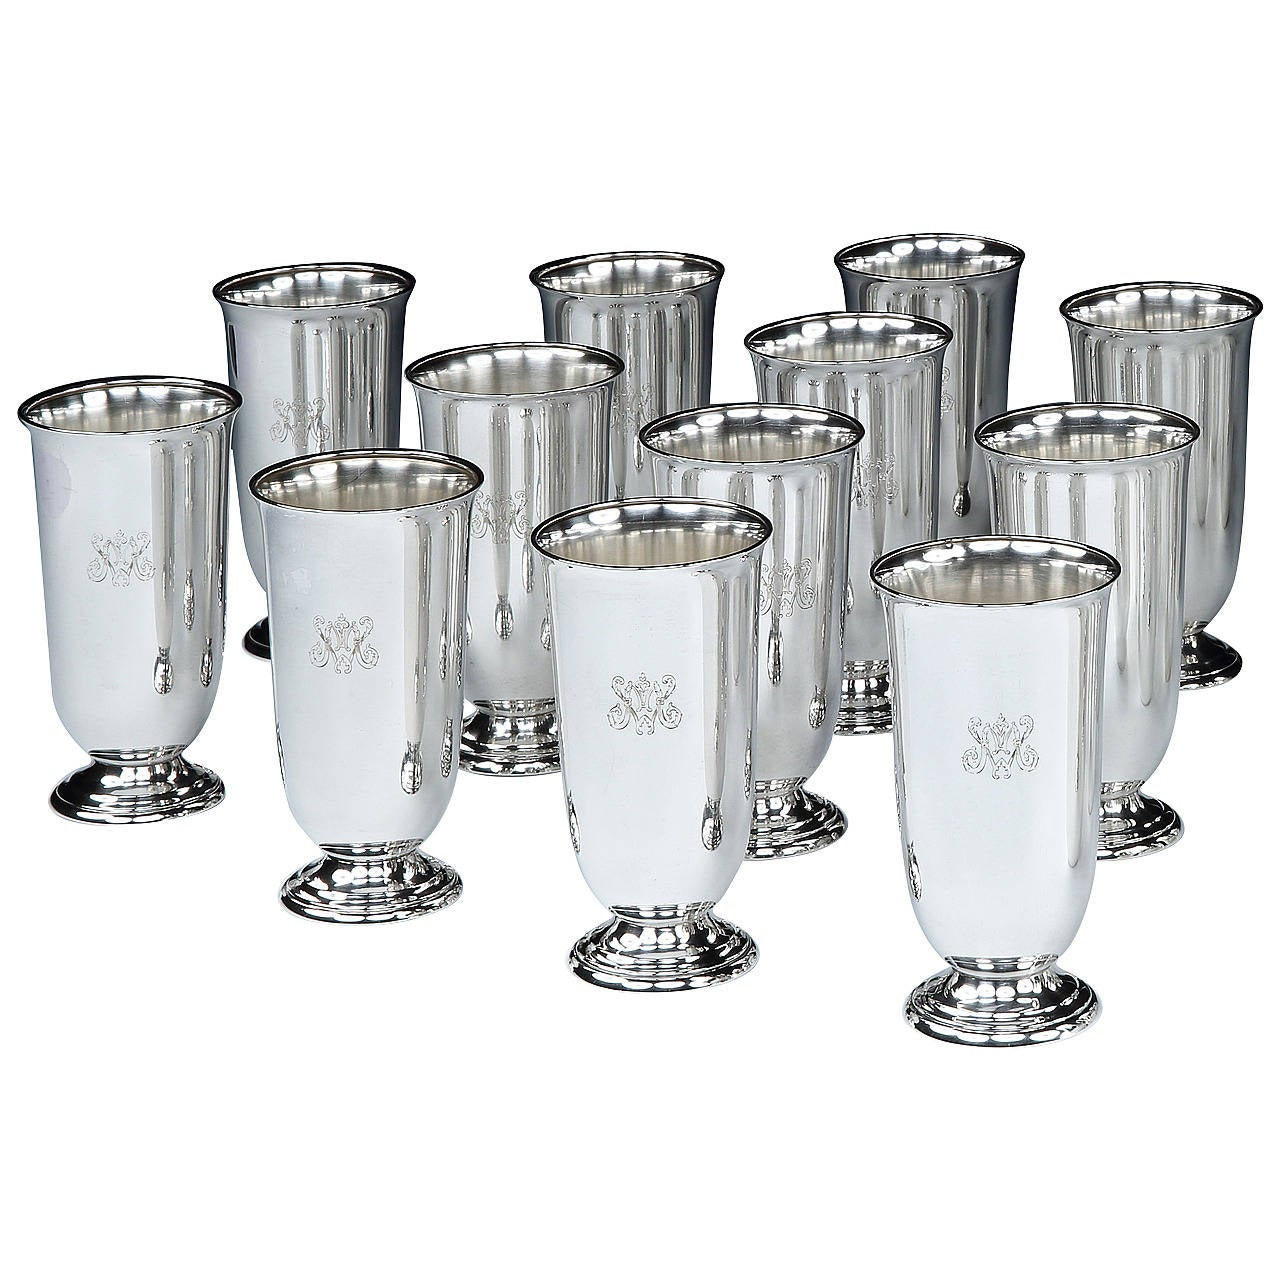 Set of 12 sterling-silver julep cups, 1930s, offered by Pullman Gallery